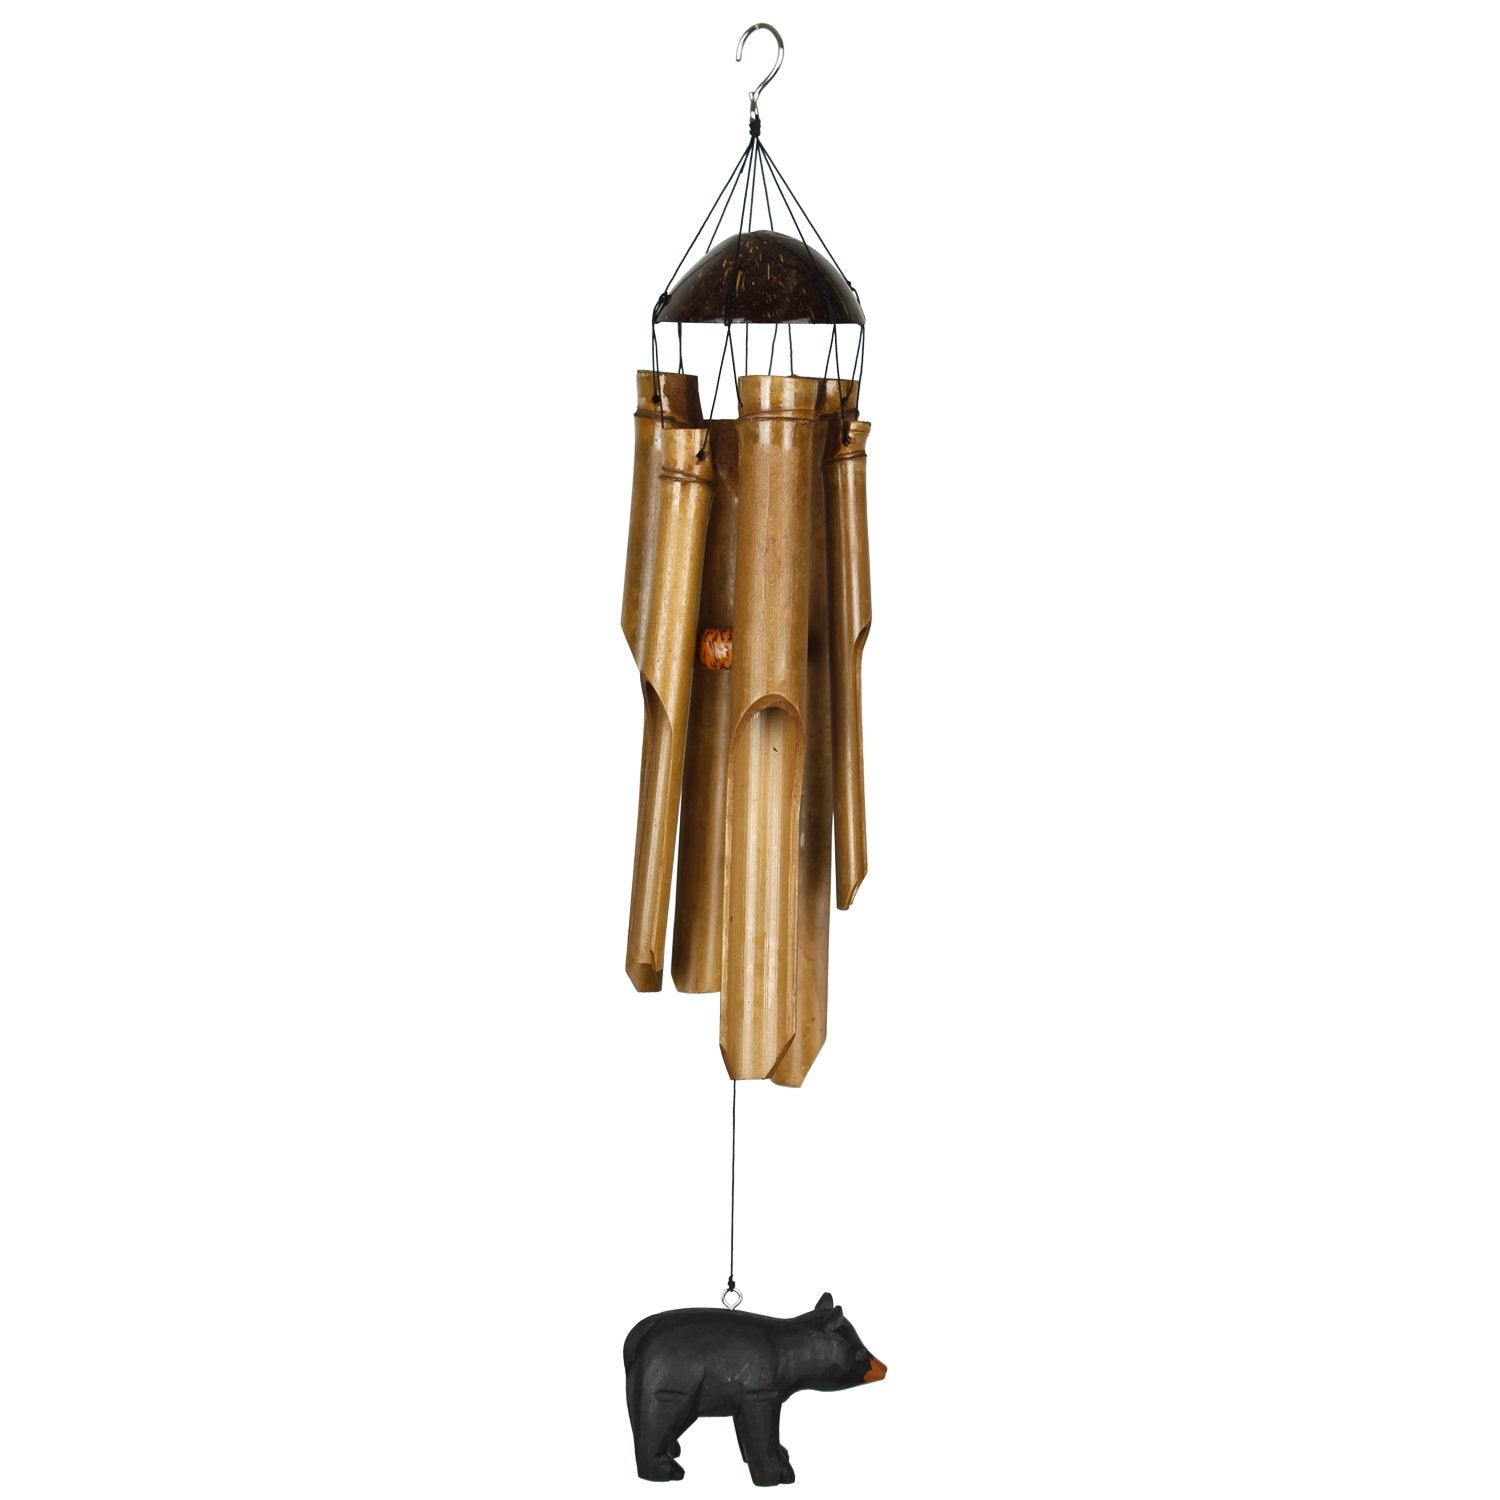 Half Coconut Bamboo Chime - Medium, Bear full product image